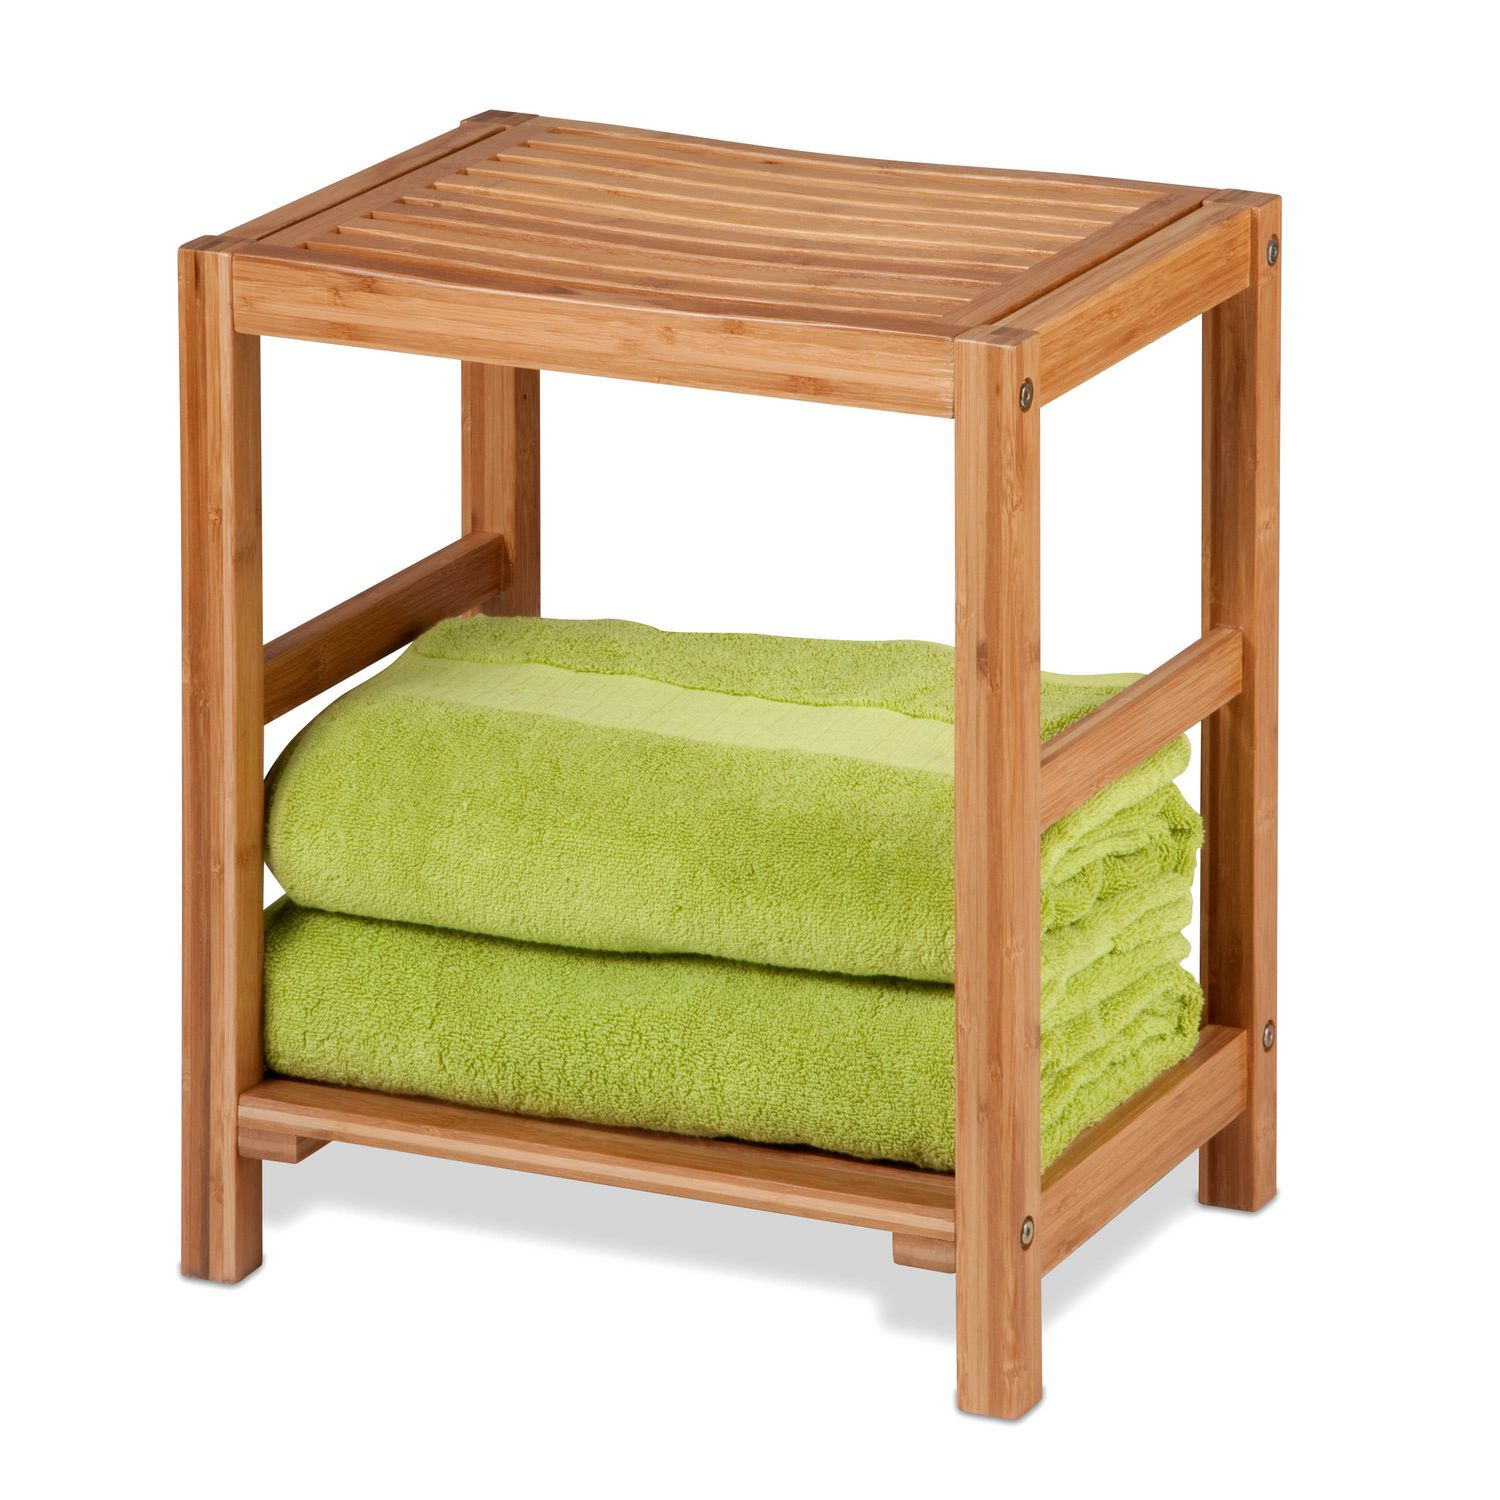 Honey-Can-Do Bamboo Spa Bench | Walmart Canada